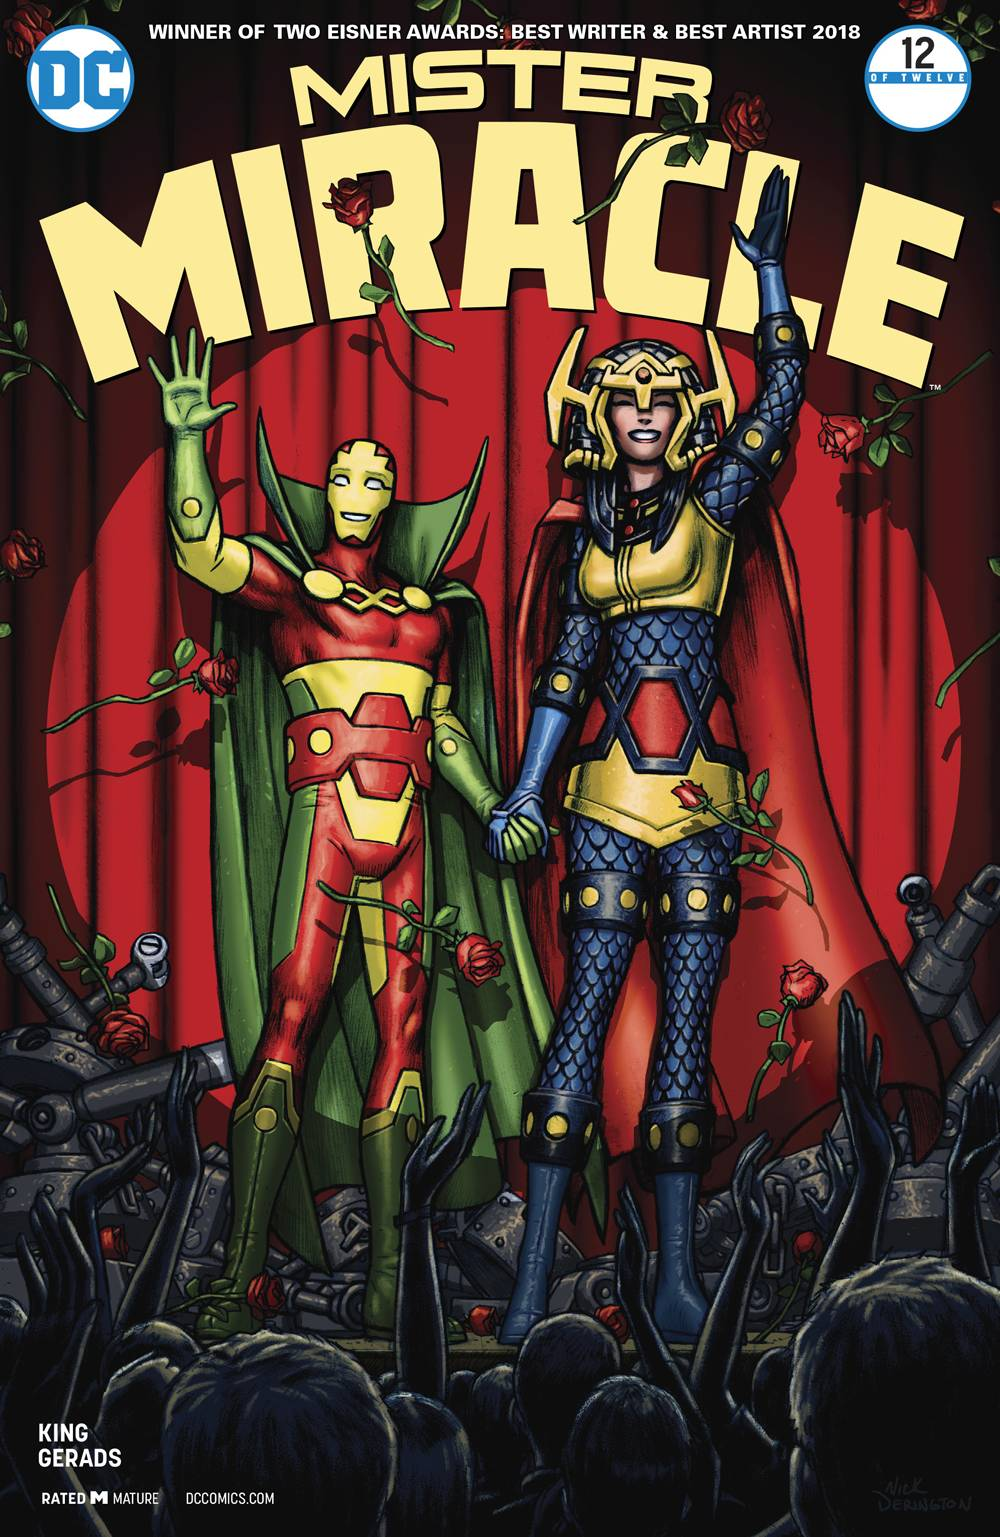 MISTER MIRACLE #12 (OF 12